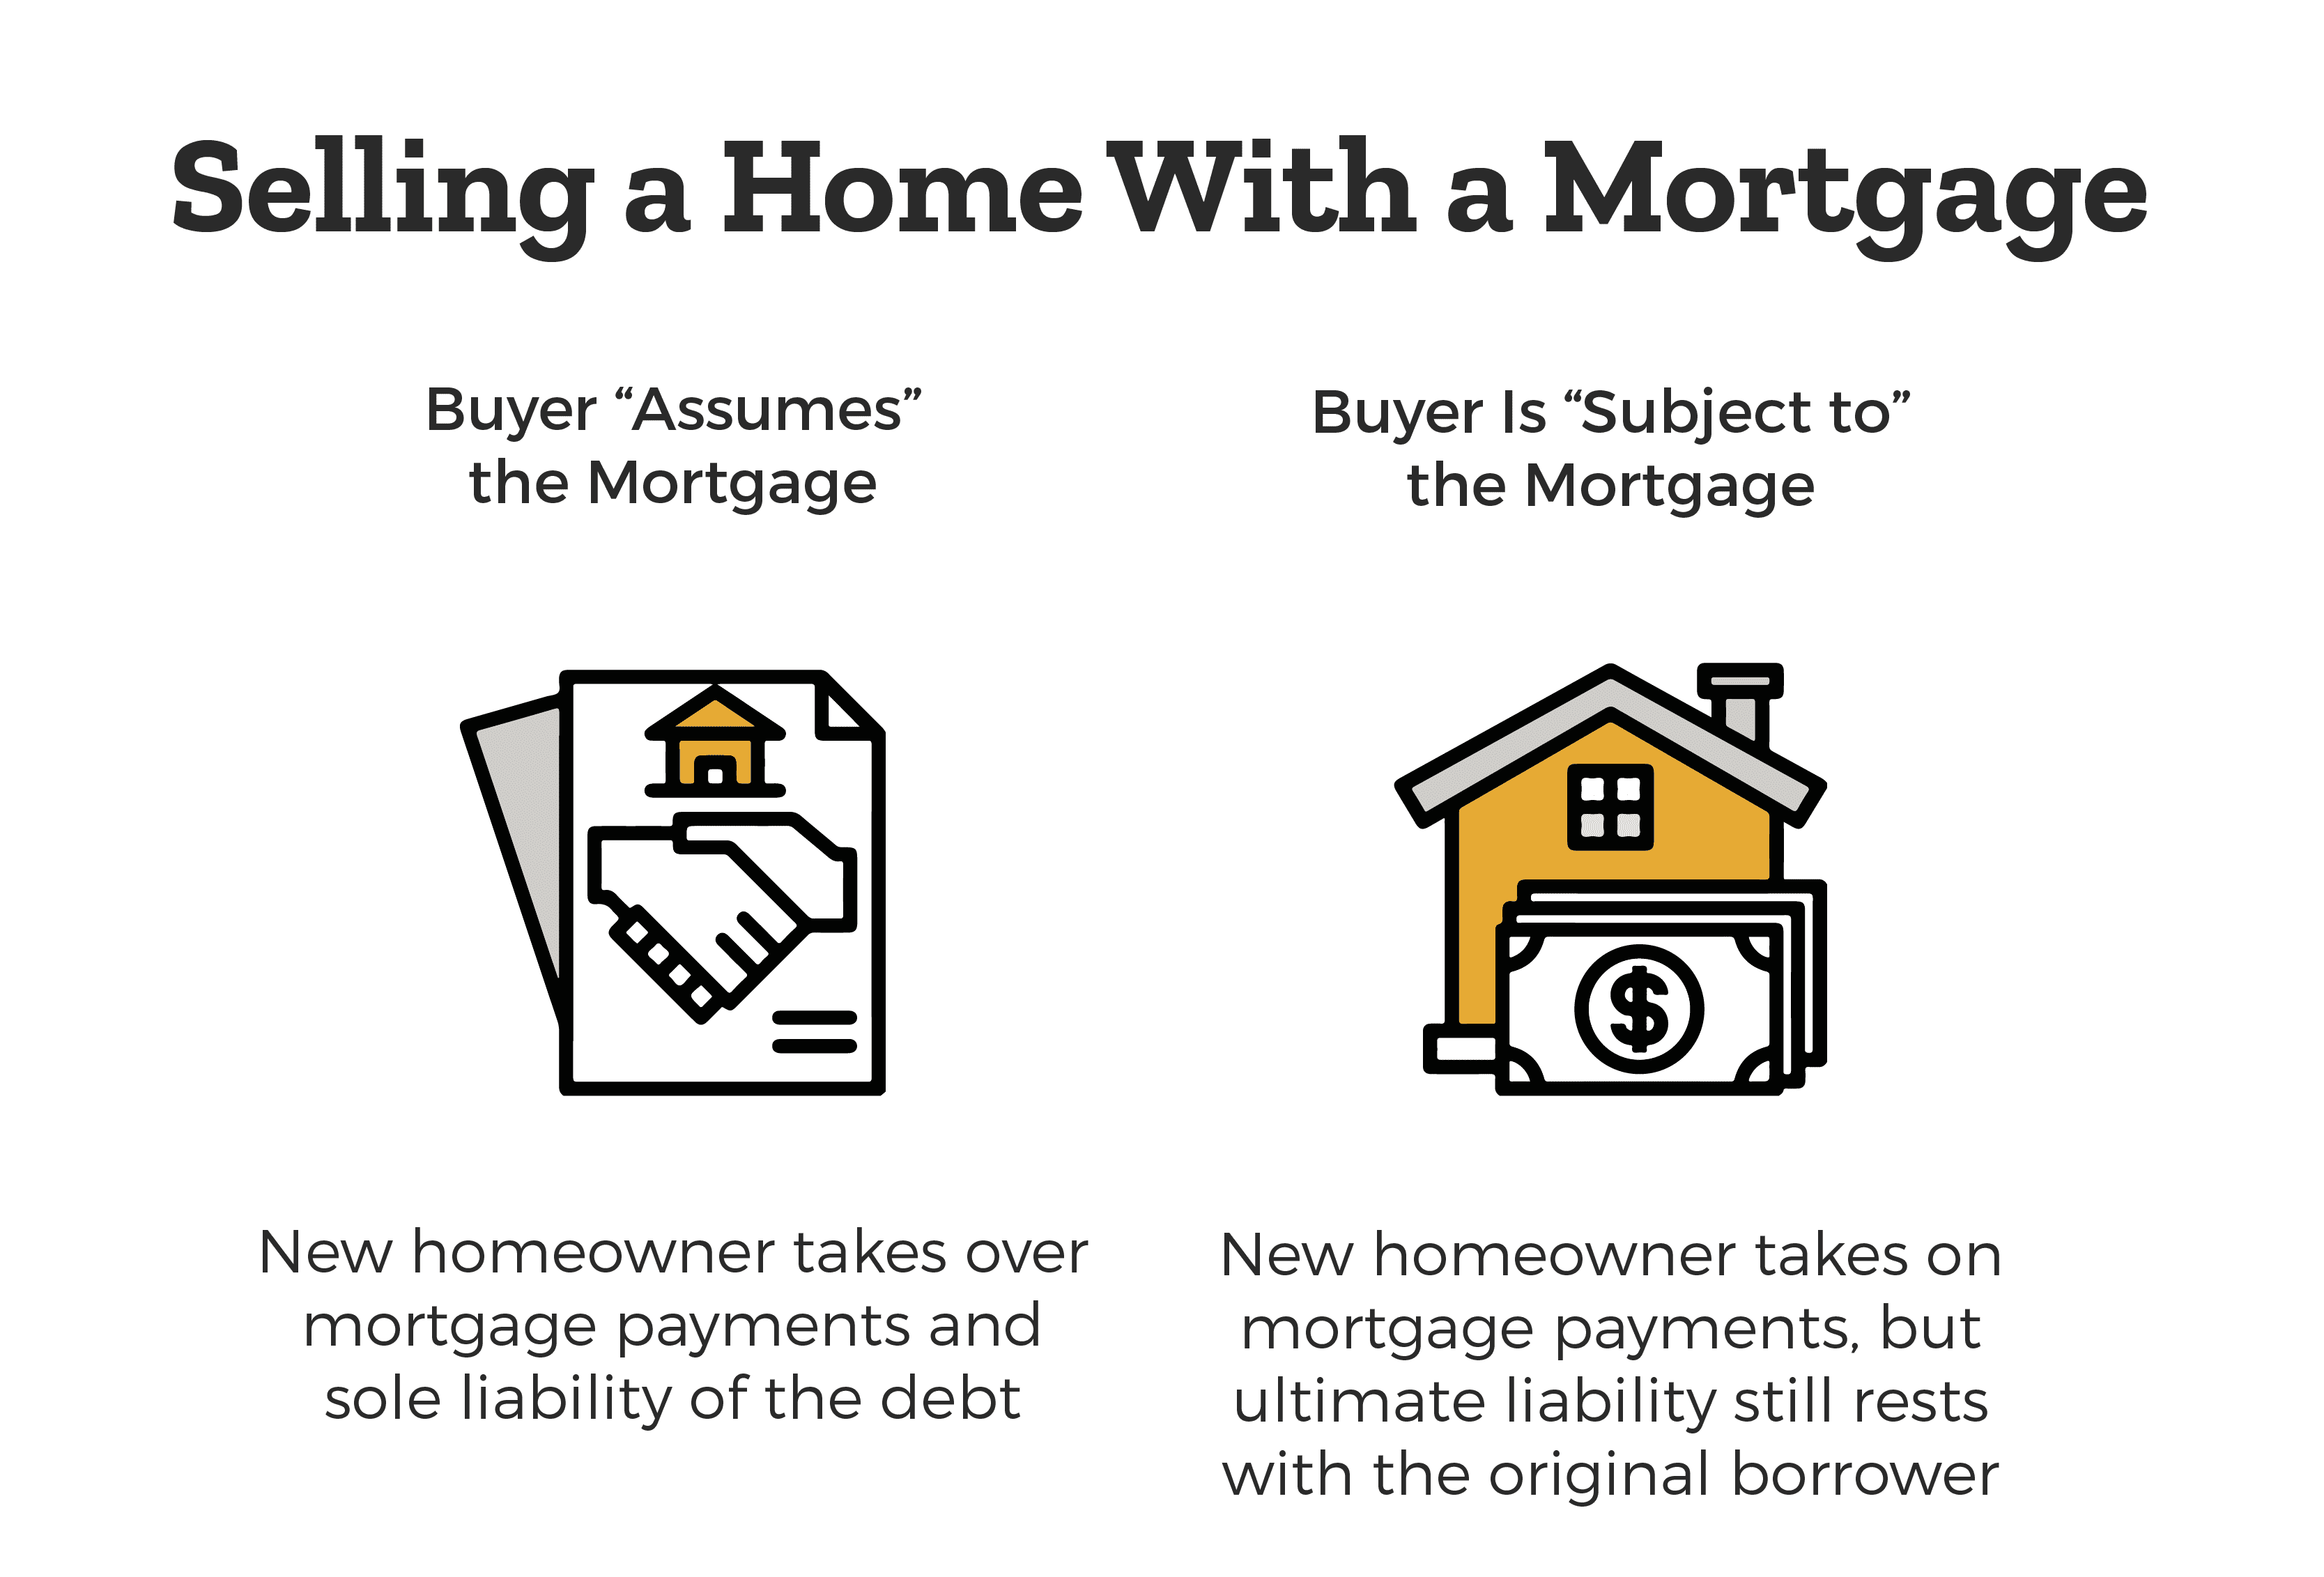 selling-home-with-a-mortgage-assuming-mortgage-versus-subject-to-mortgage